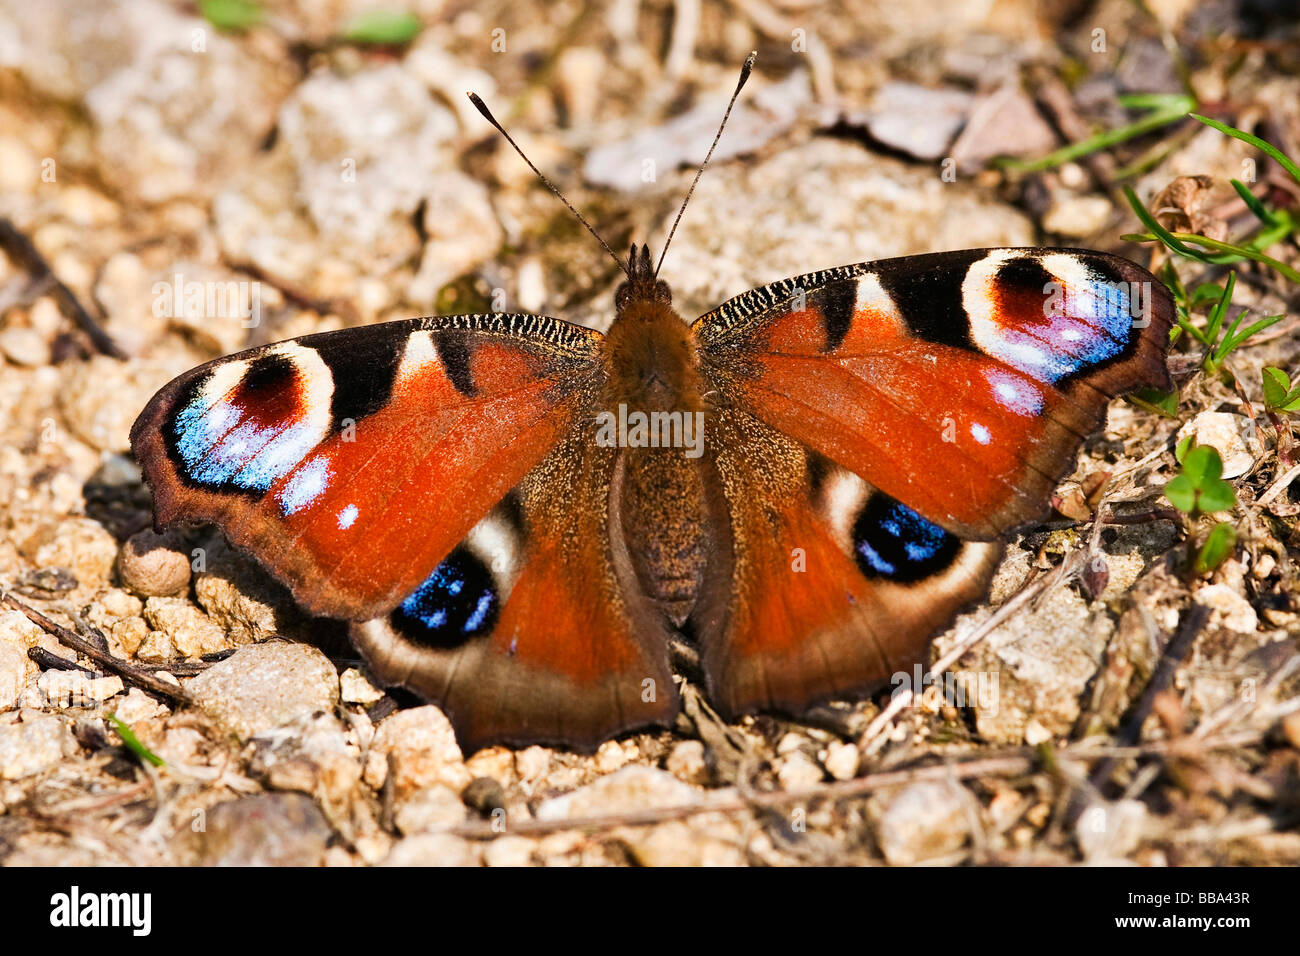 European Peacock butterfly (Inachis io) - Stock Image